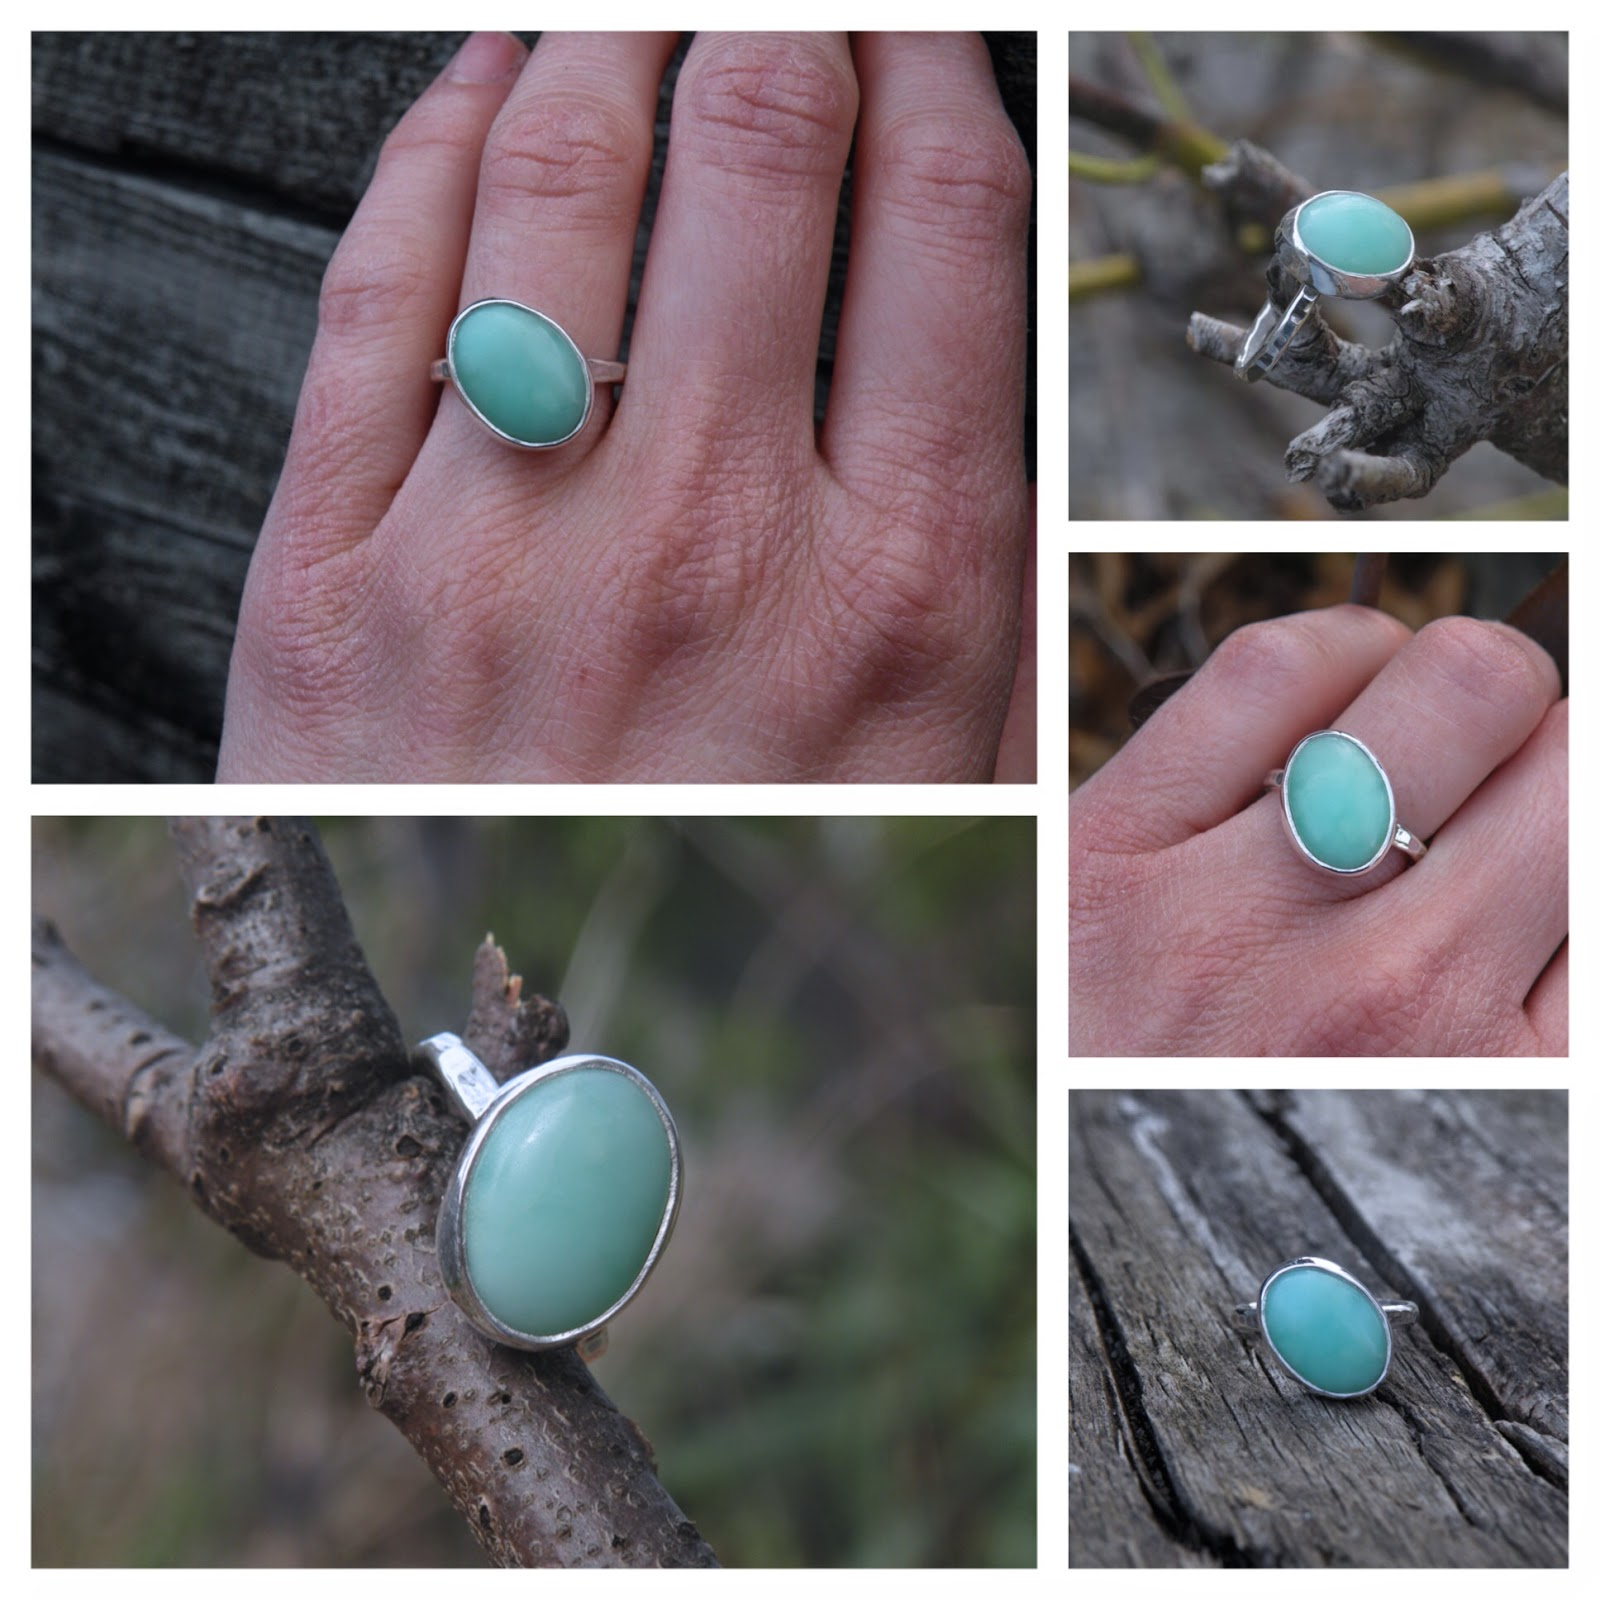 https://www.etsy.com/listing/188264515/chrysoprase-ring-chrysoprase-mint-green?ref=shop_home_active_5